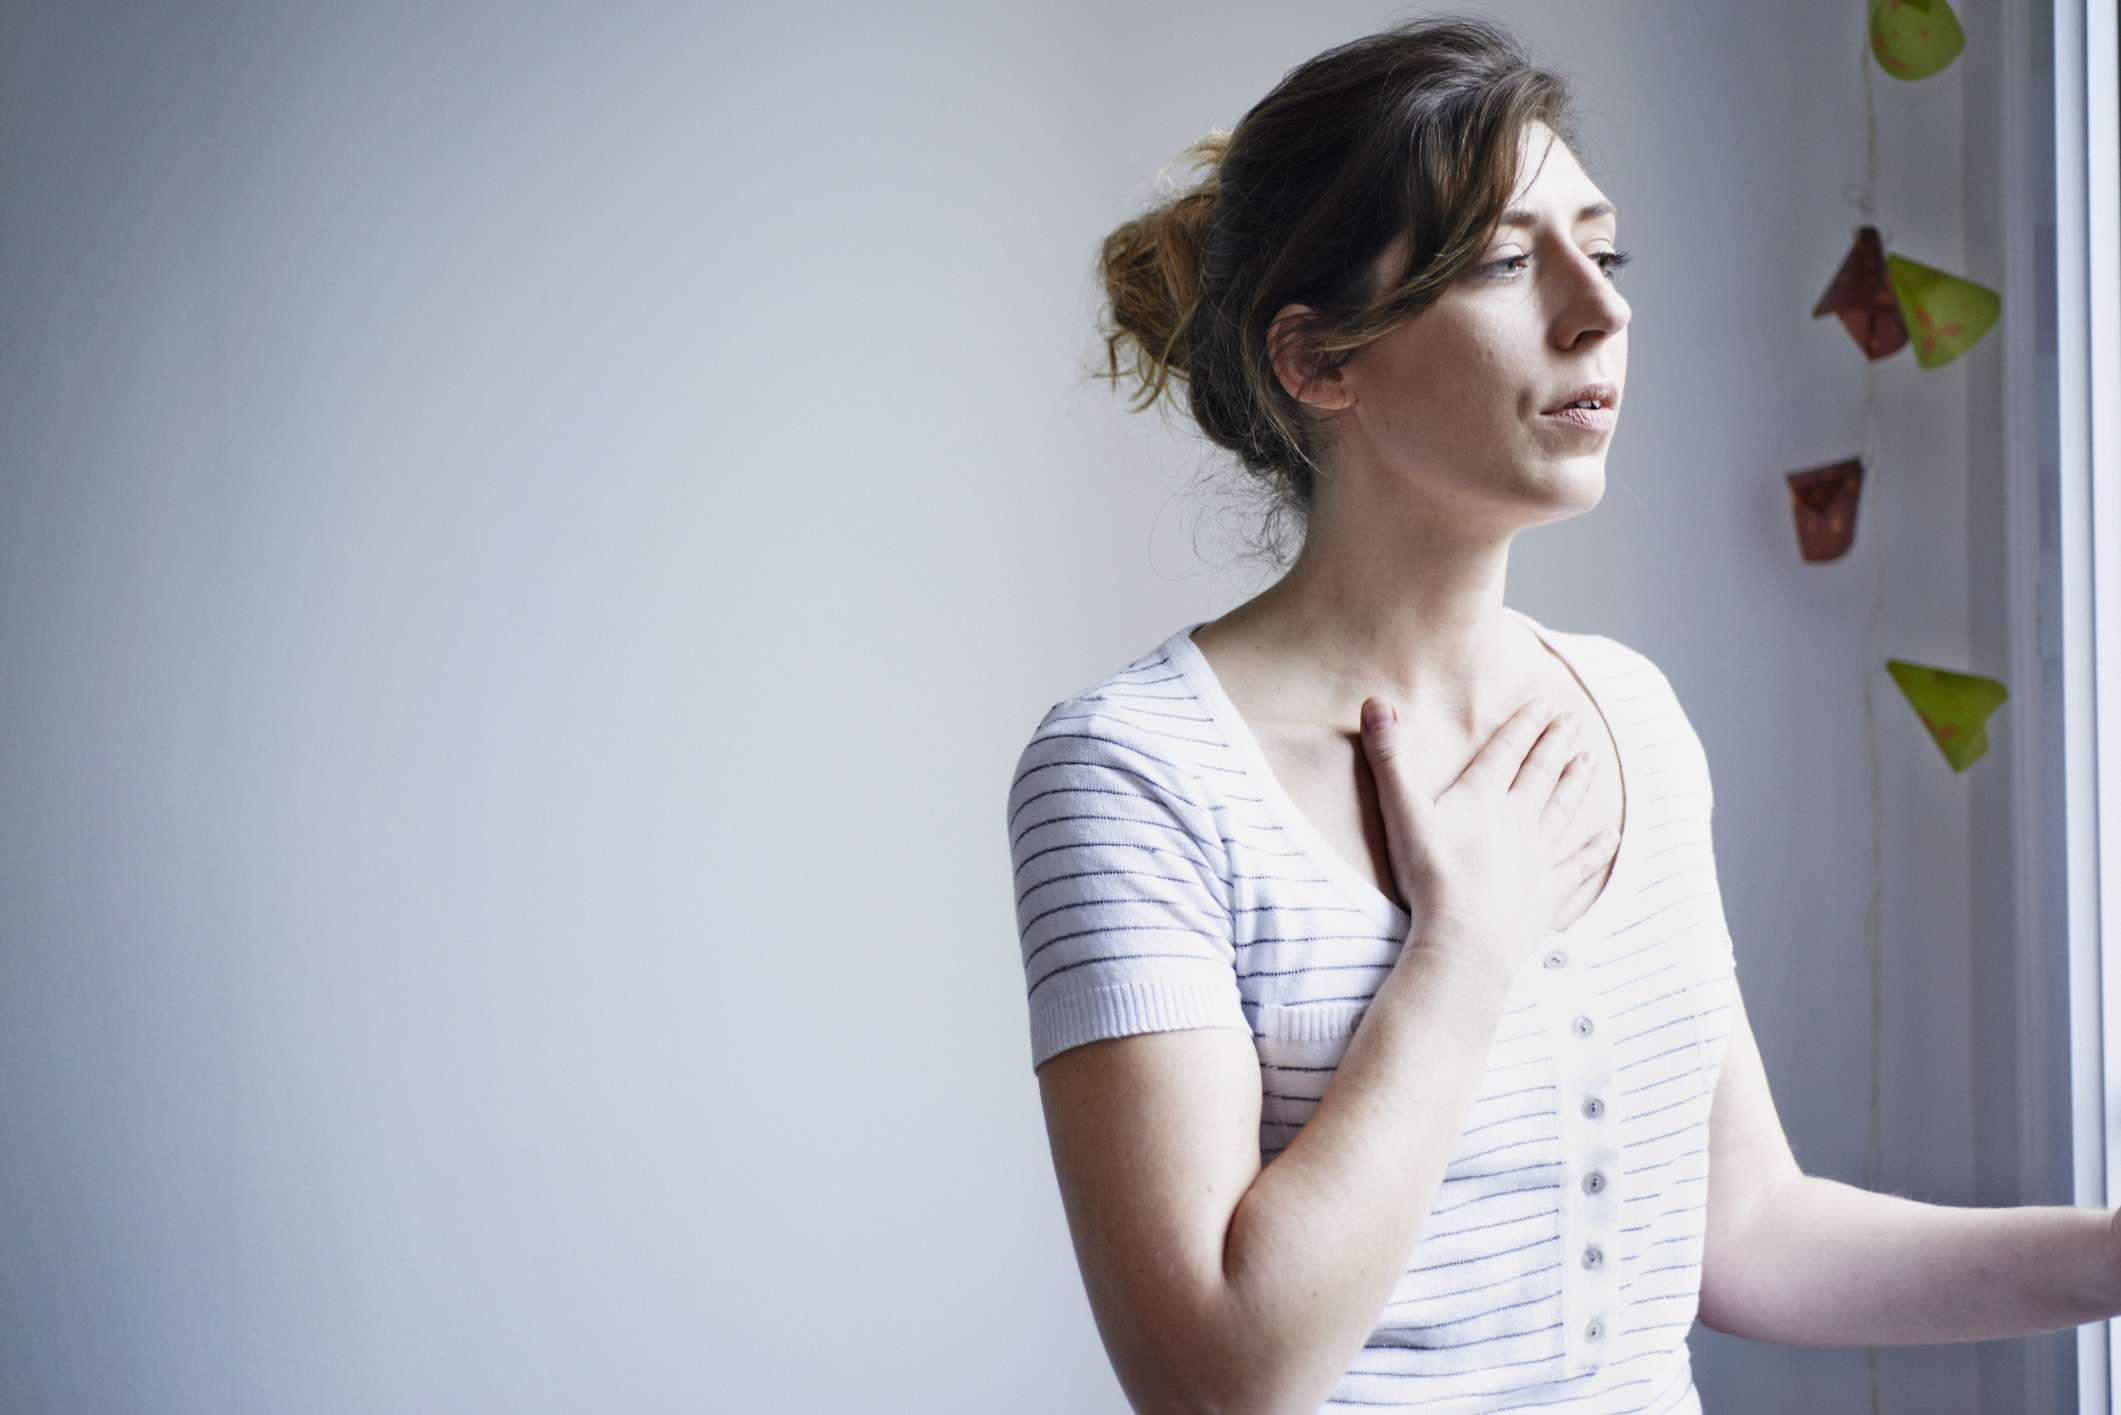 Woman with shortness of breath